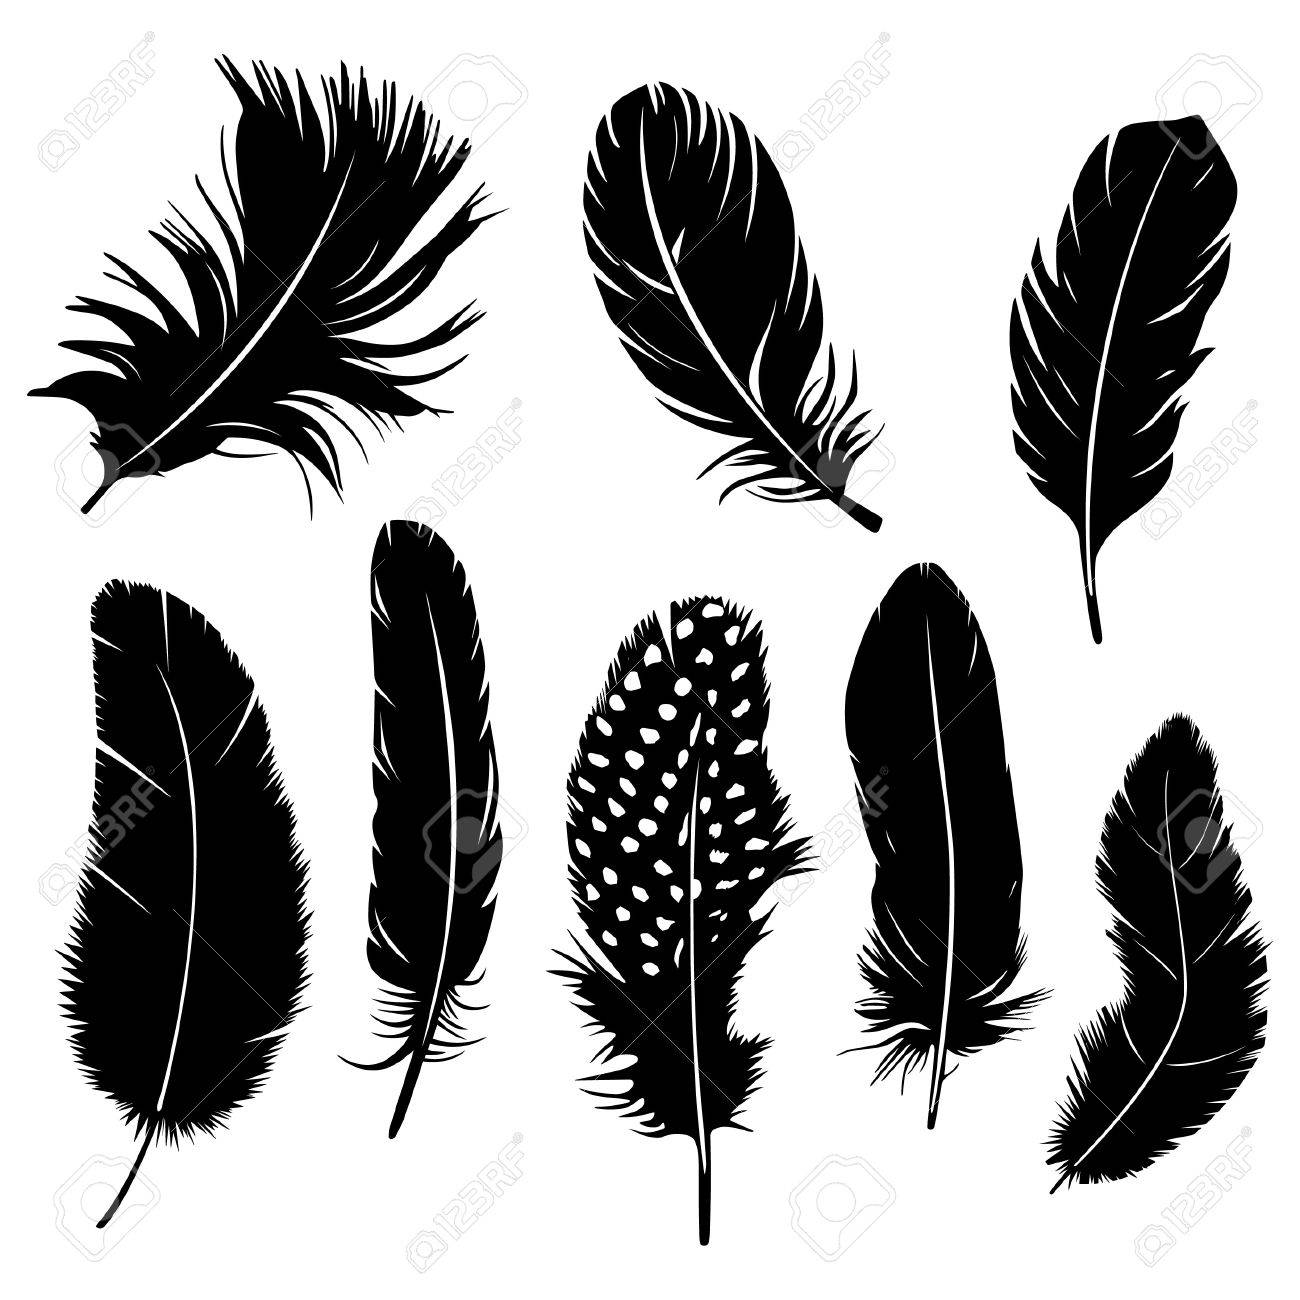 Set of feather clipart.